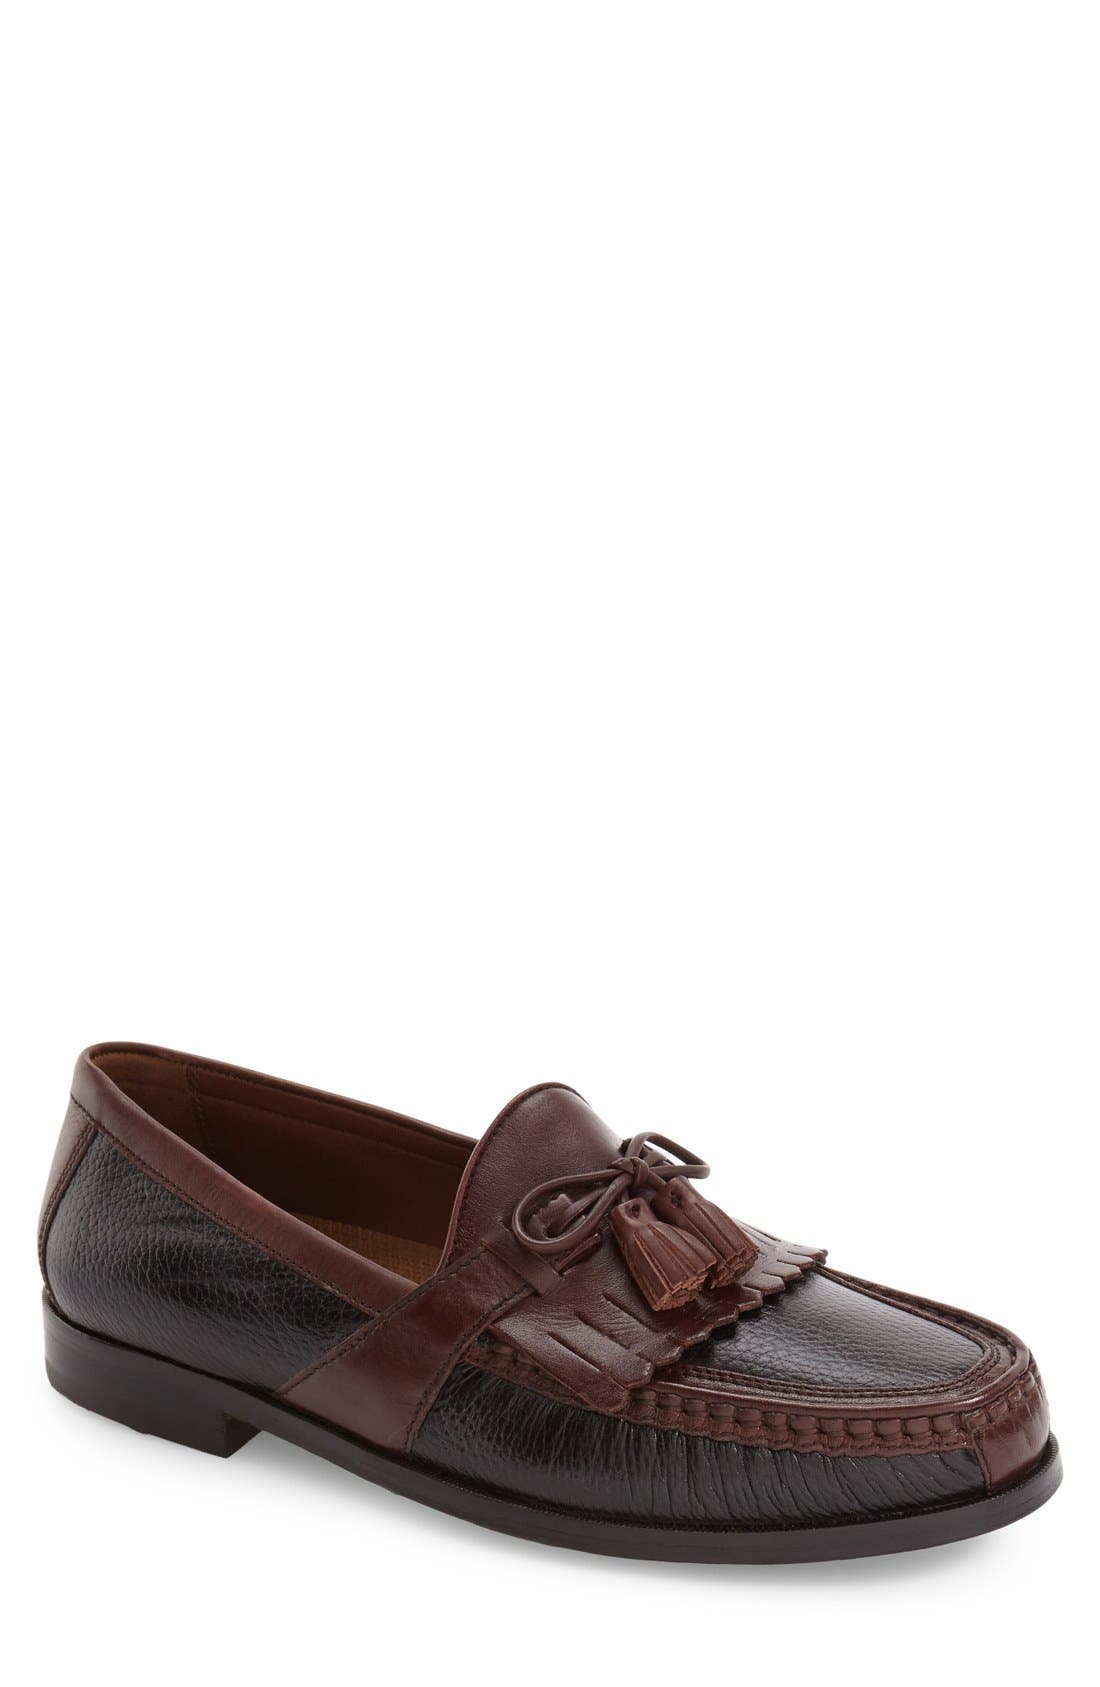 JOHNSTON & MURPHY, 'Aragon II' Loafer, Main thumbnail 1, color, BLACK/ BROWN LEATHER